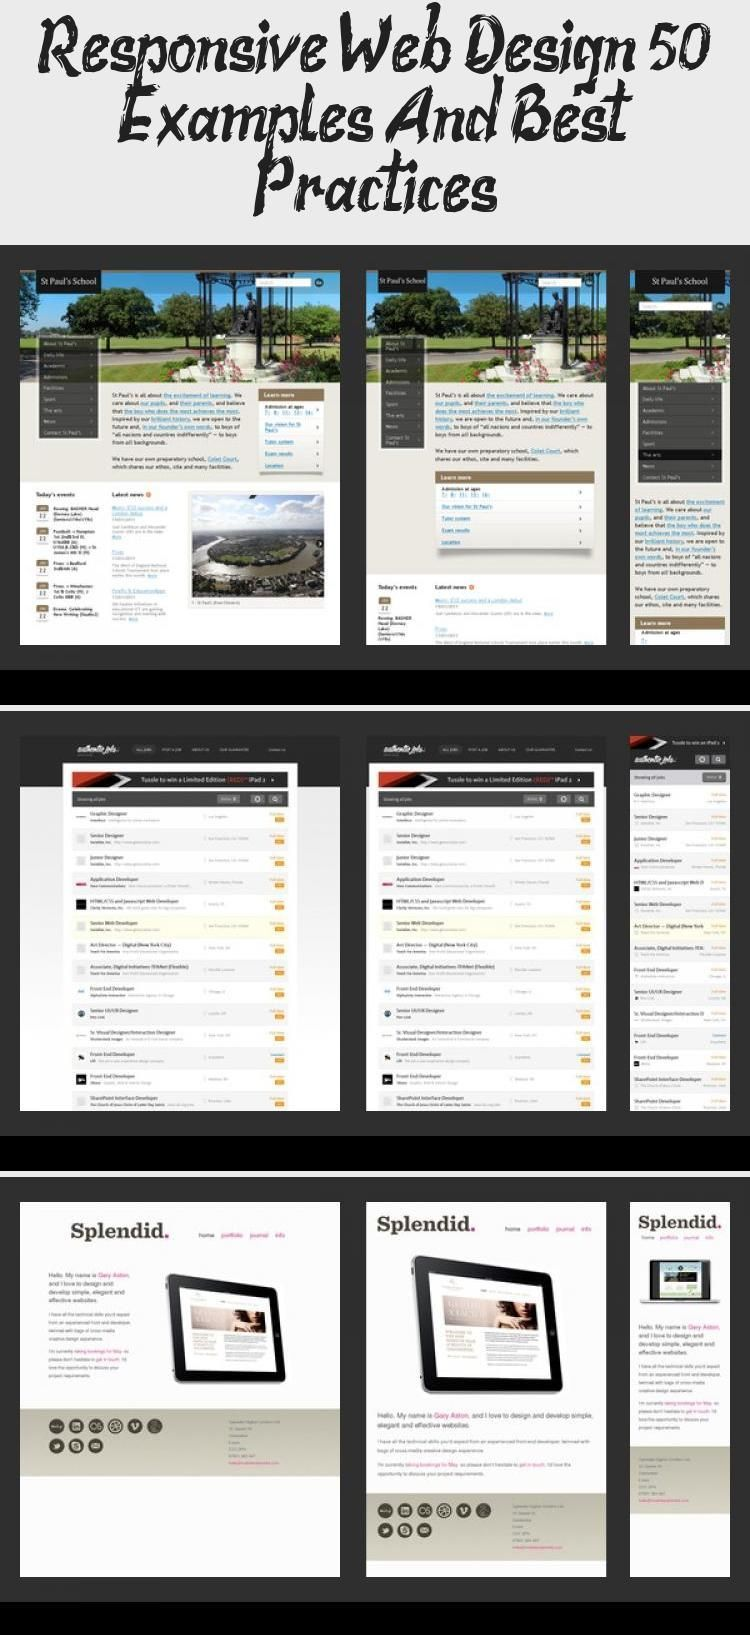 Responsive Web Design 50 Examples And Best Practices Design Dchouzz Com Dchouzzcom Design Examples Practices Responsive Web En 2020